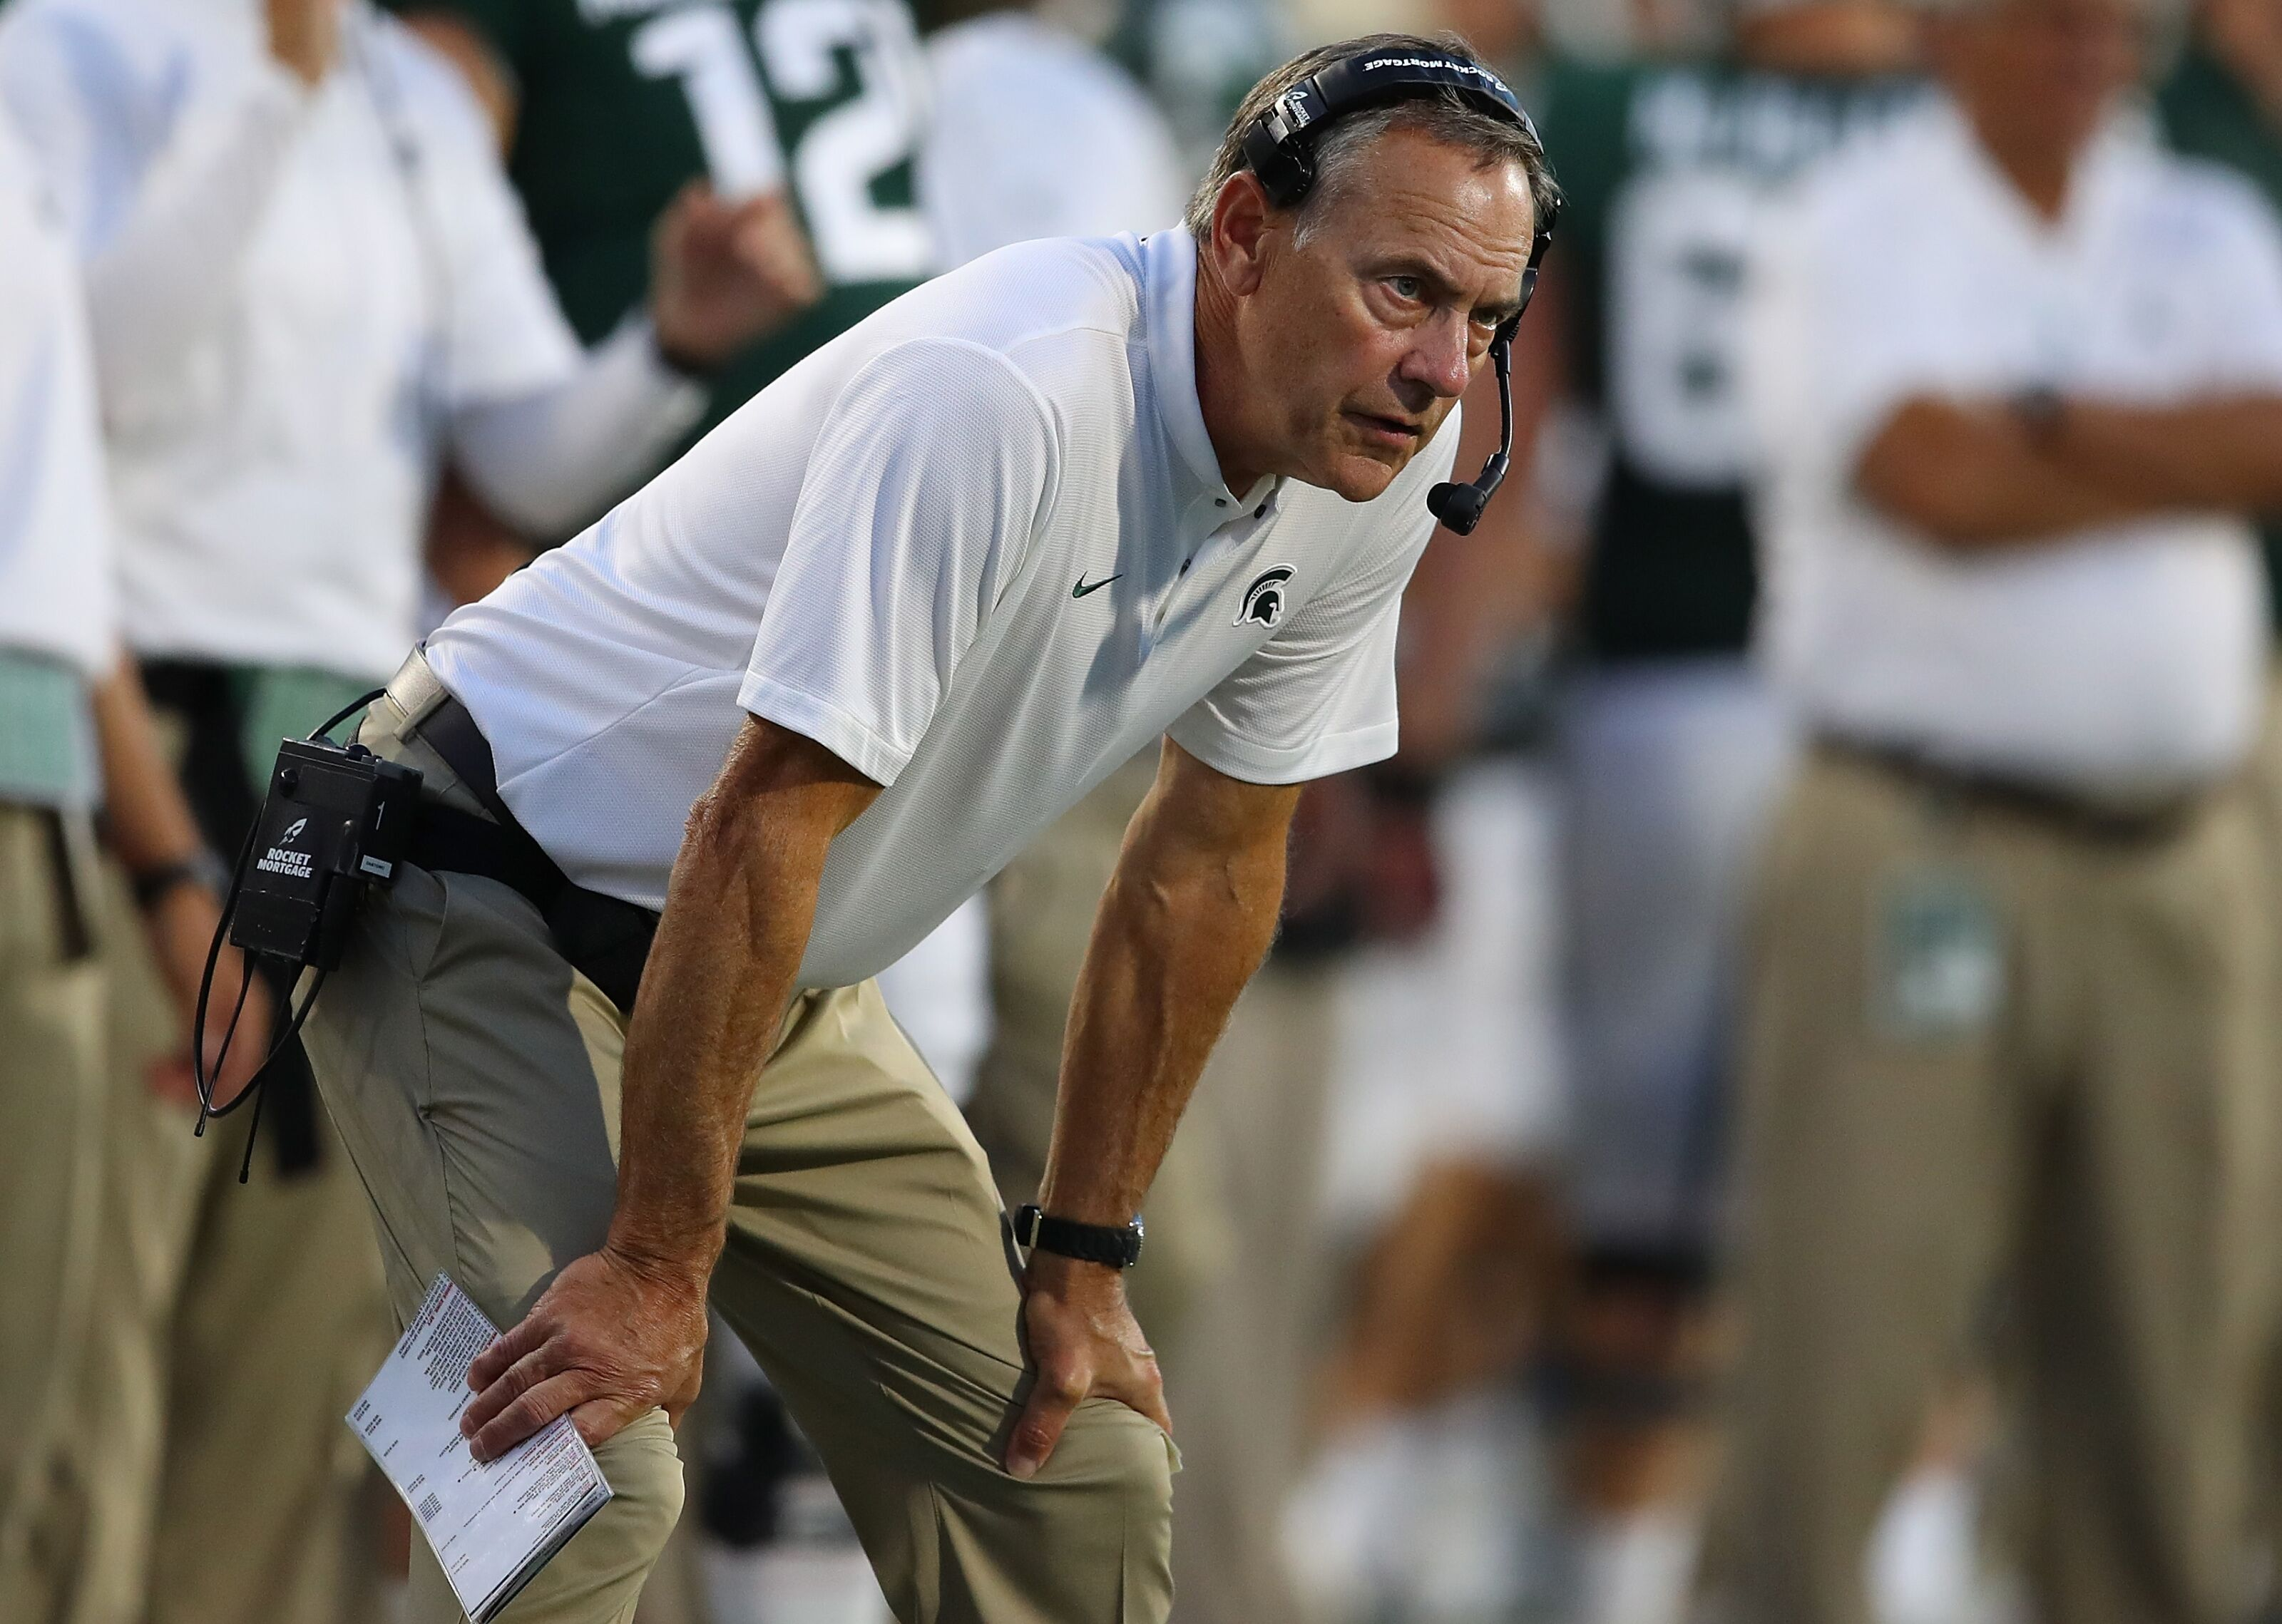 Michigan State Football: What to expect from Adam Berghorst in 2019